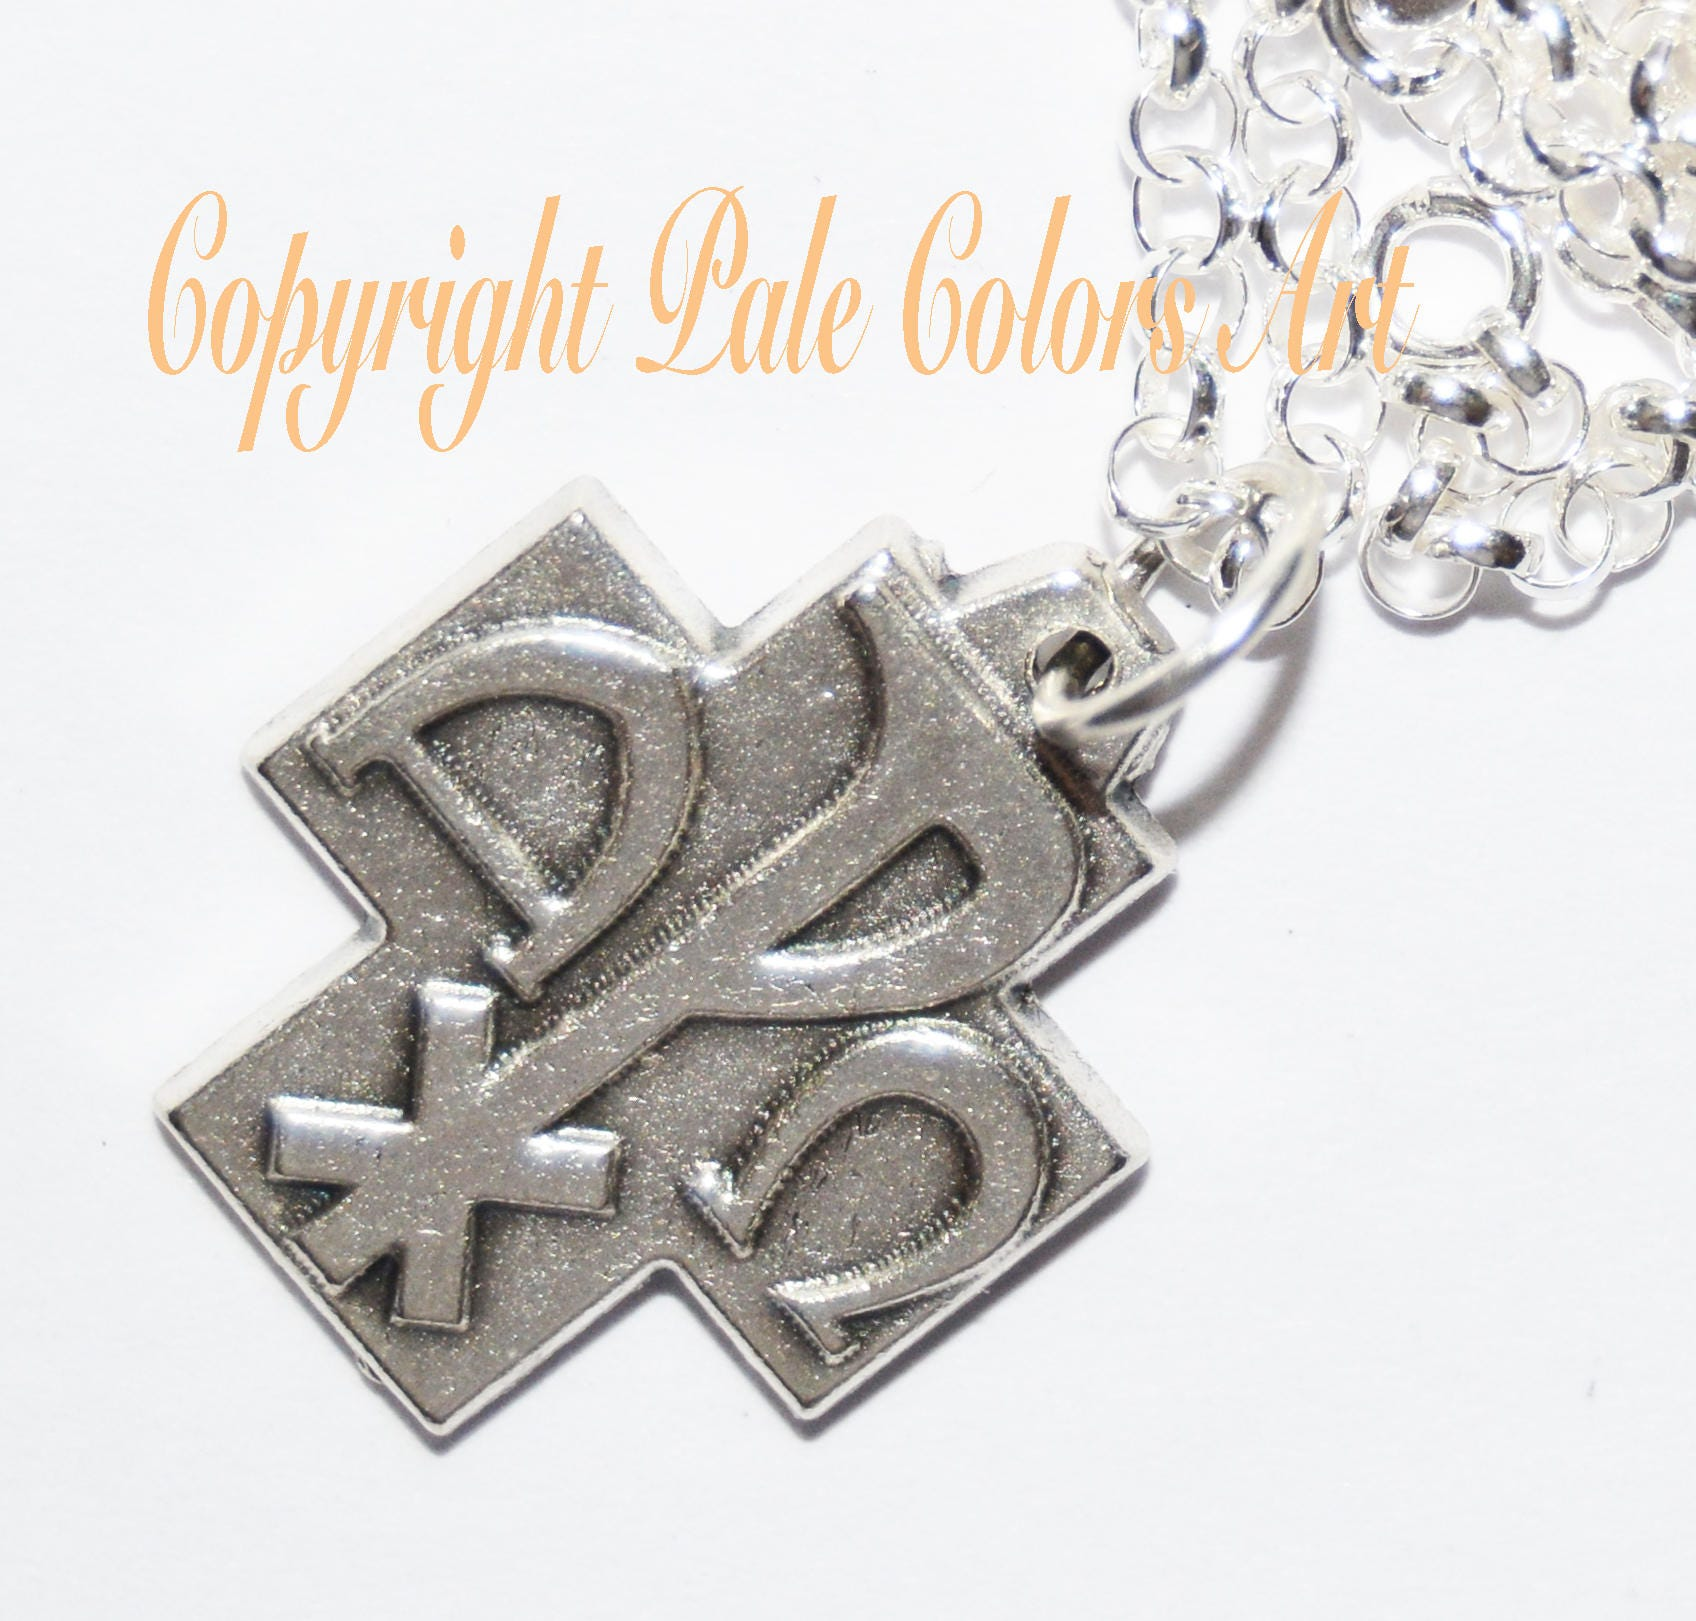 Greek cross necklacealpha omega cross necklacesterling silver greek cross necklacealpha omega cross necklacesterling silver chain necklacegreek symbols alpha omega necklacethe beginning and end buycottarizona